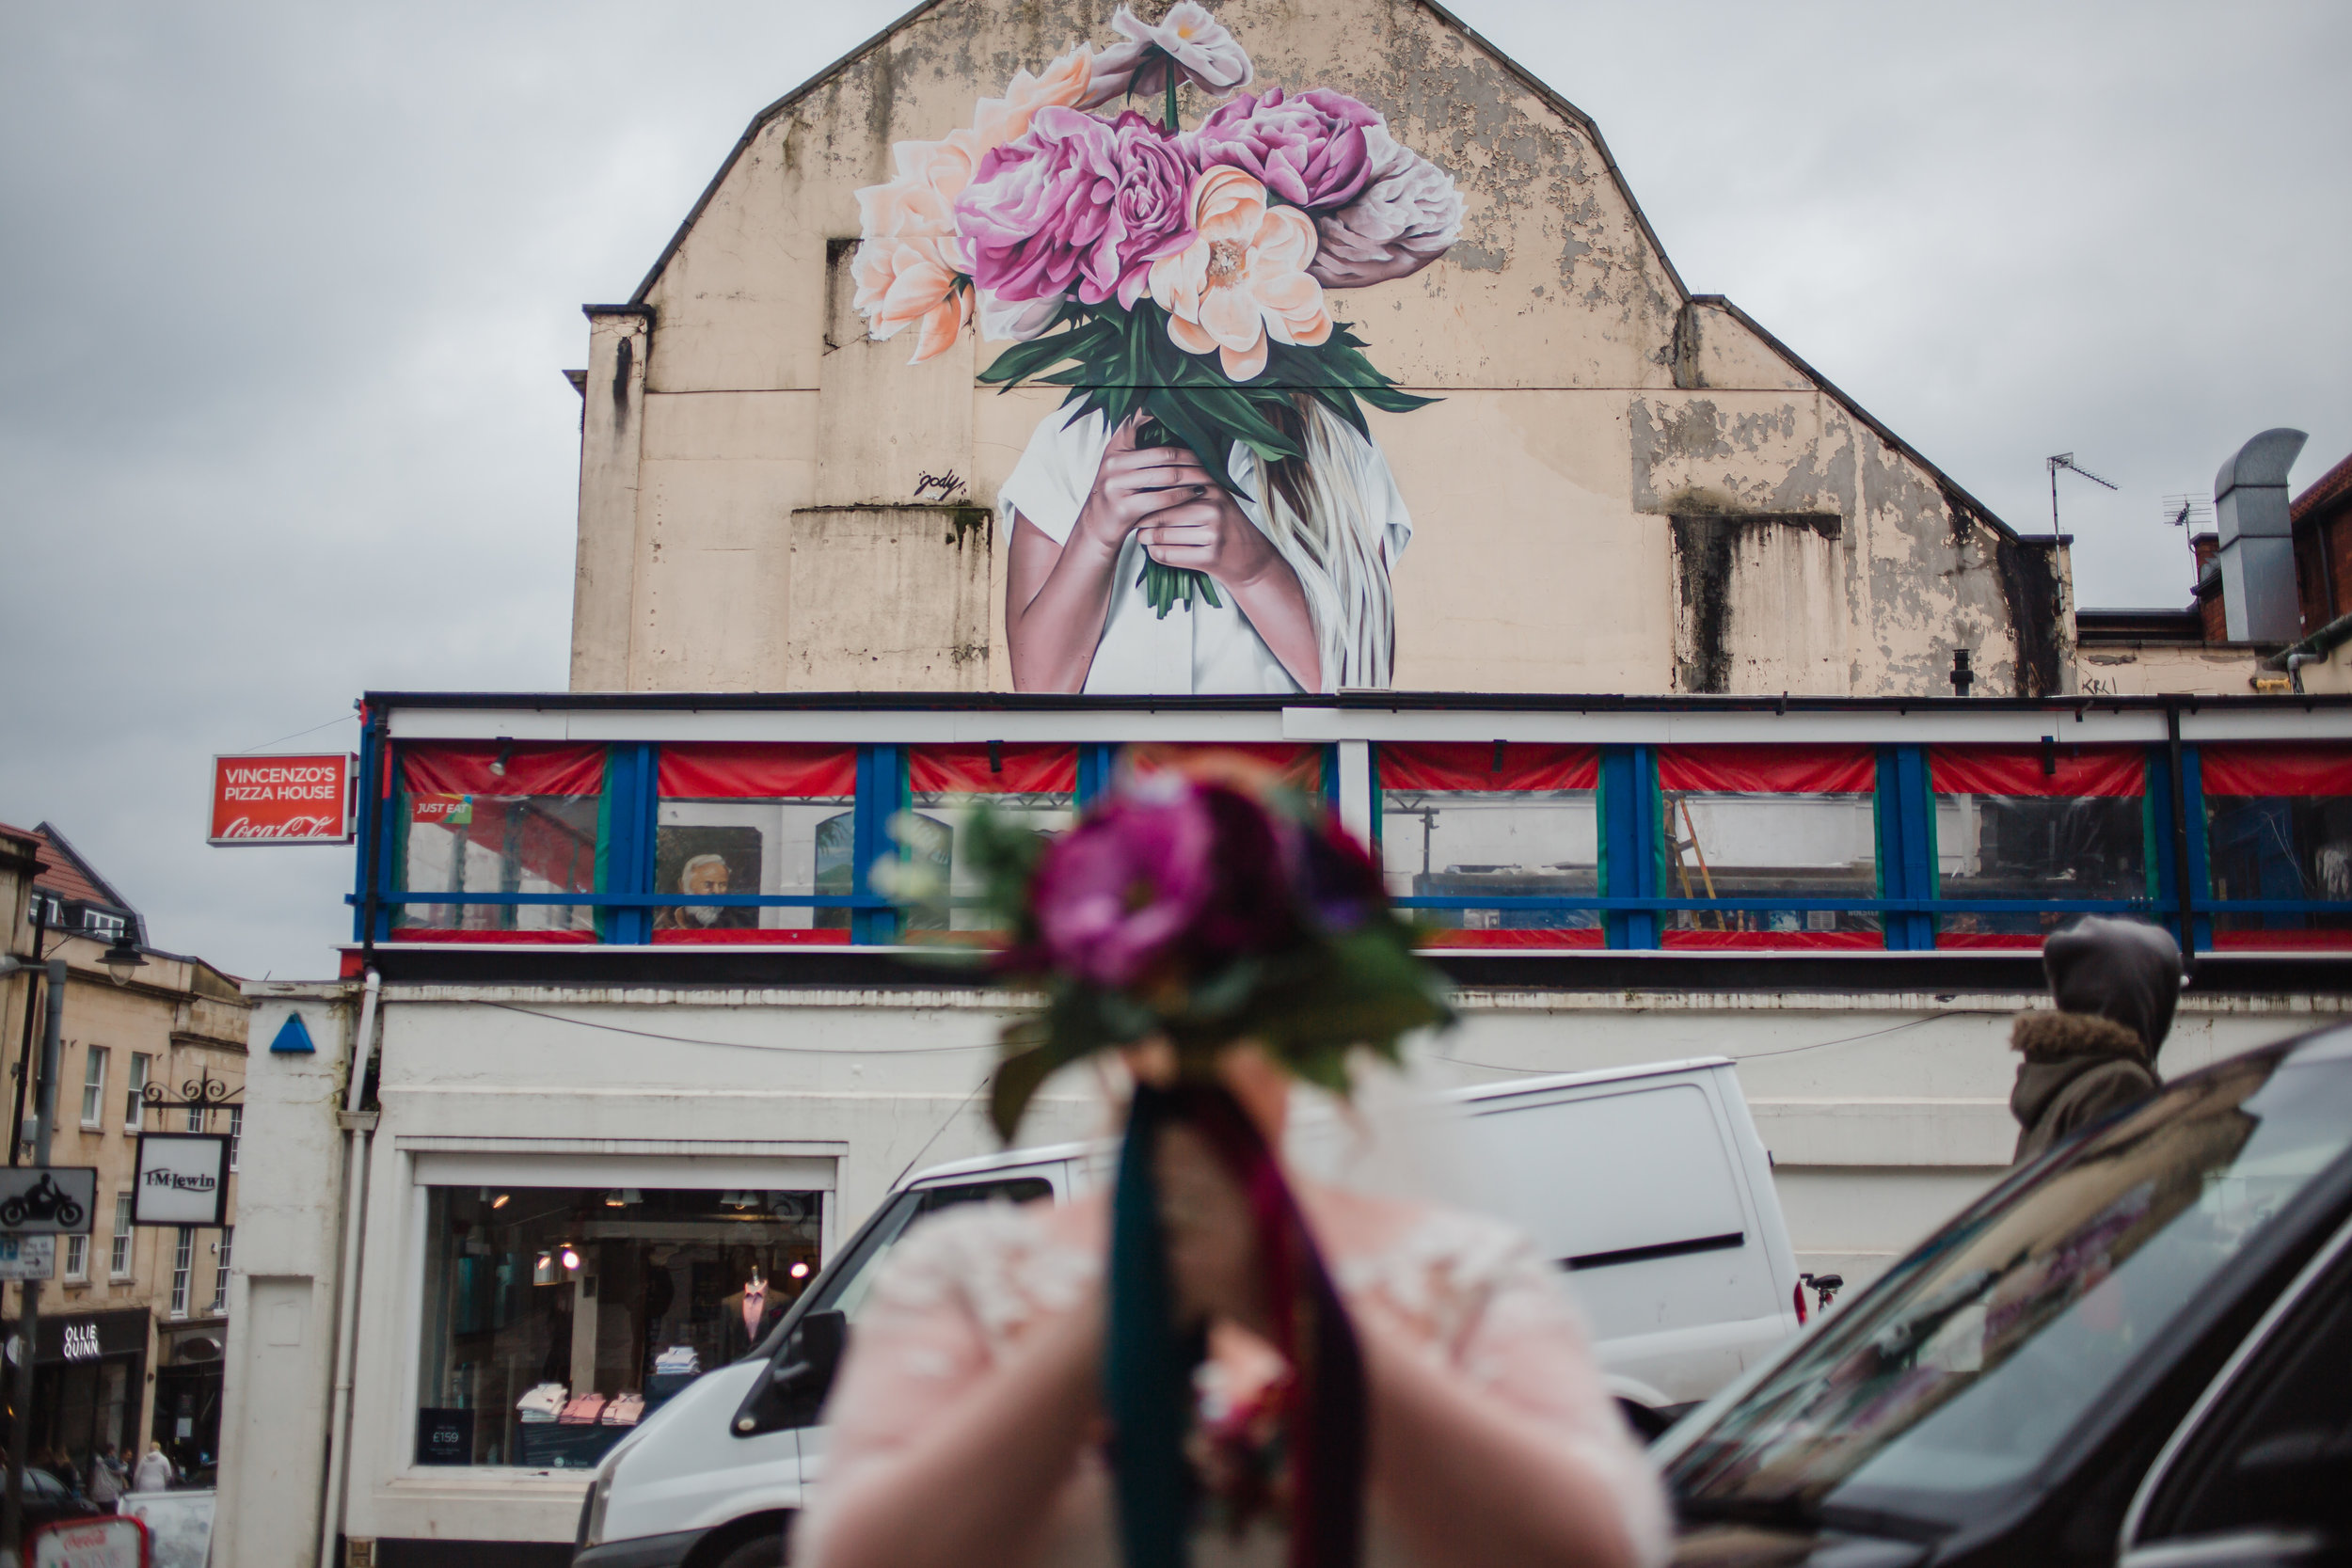 two brides and flowers - street art in bristol